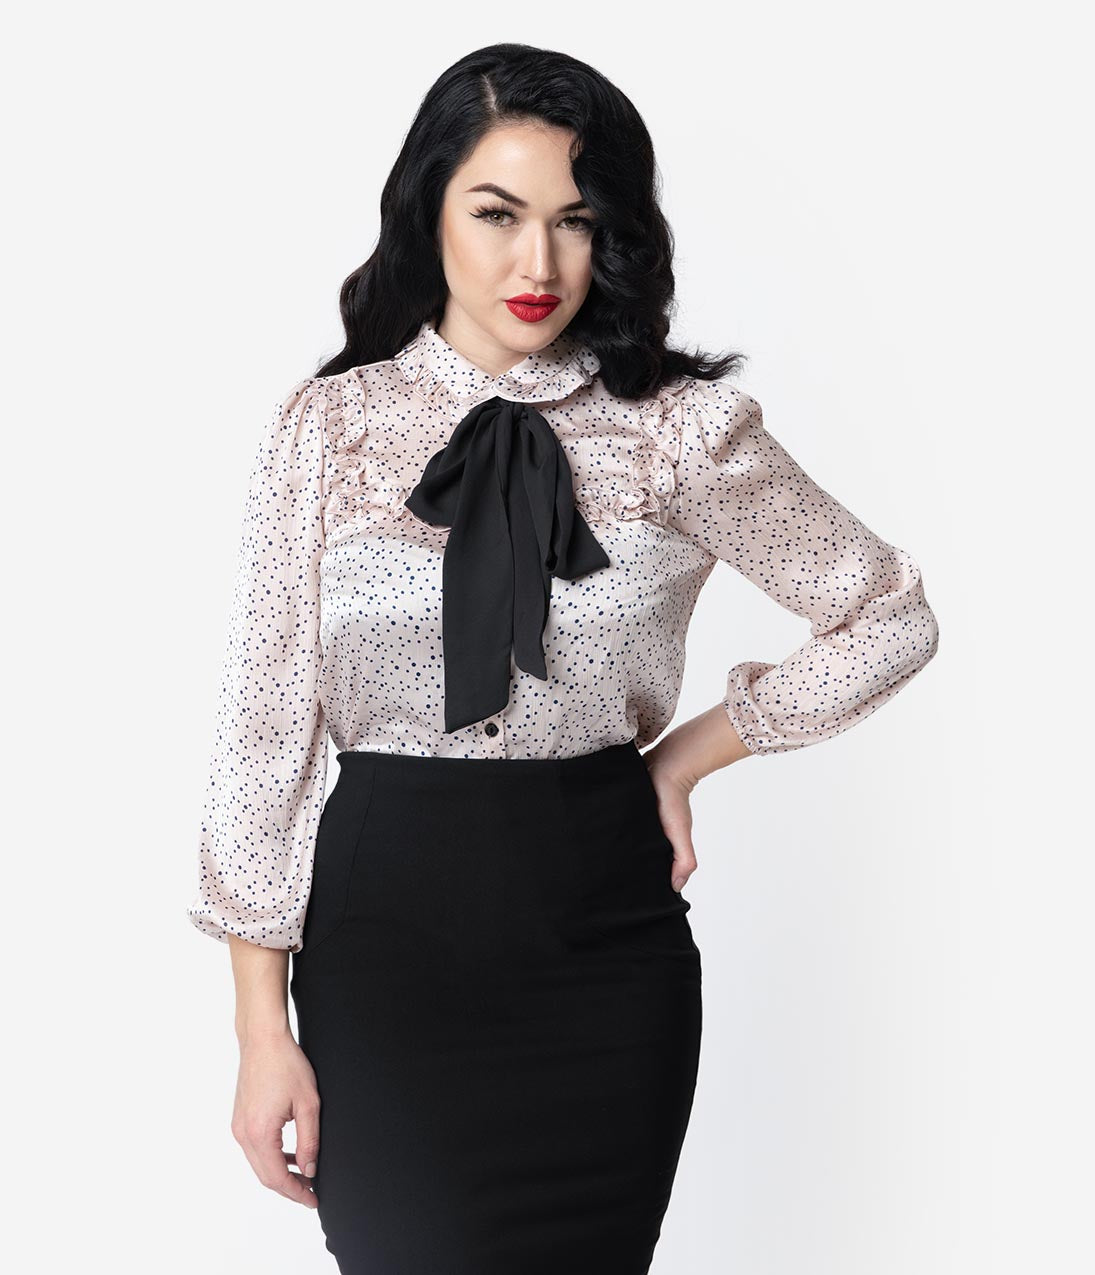 1940s Blouses and Tops 1940S Style Blush Pink  Black Dotted Neck Tie Blouse $48.00 AT vintagedancer.com